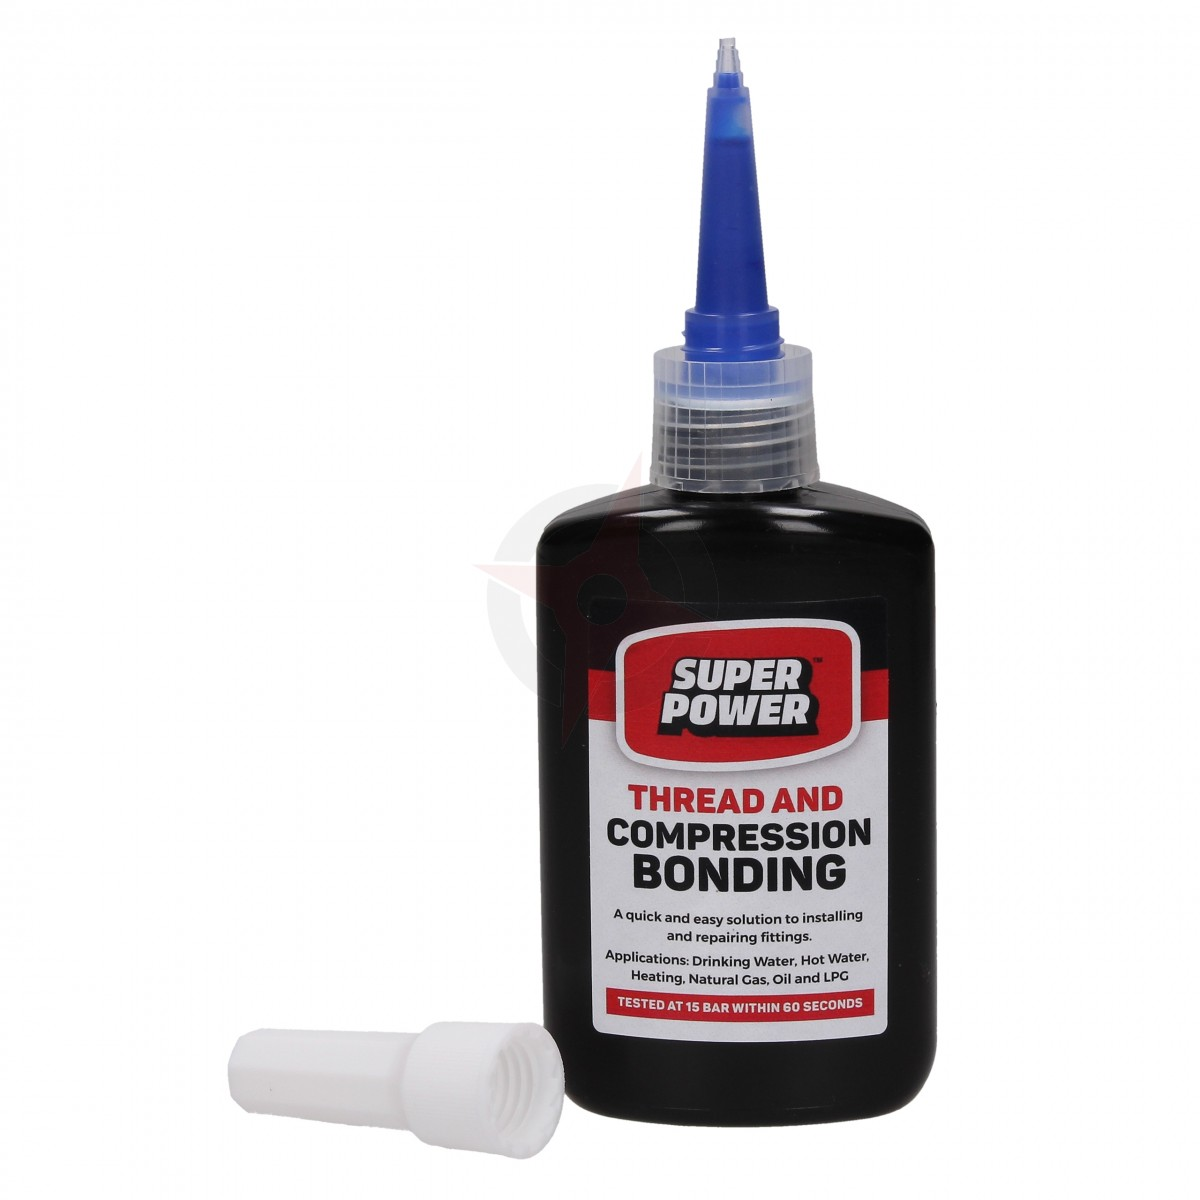 Super Power Thread and Compression Bonding 50ml - Compass